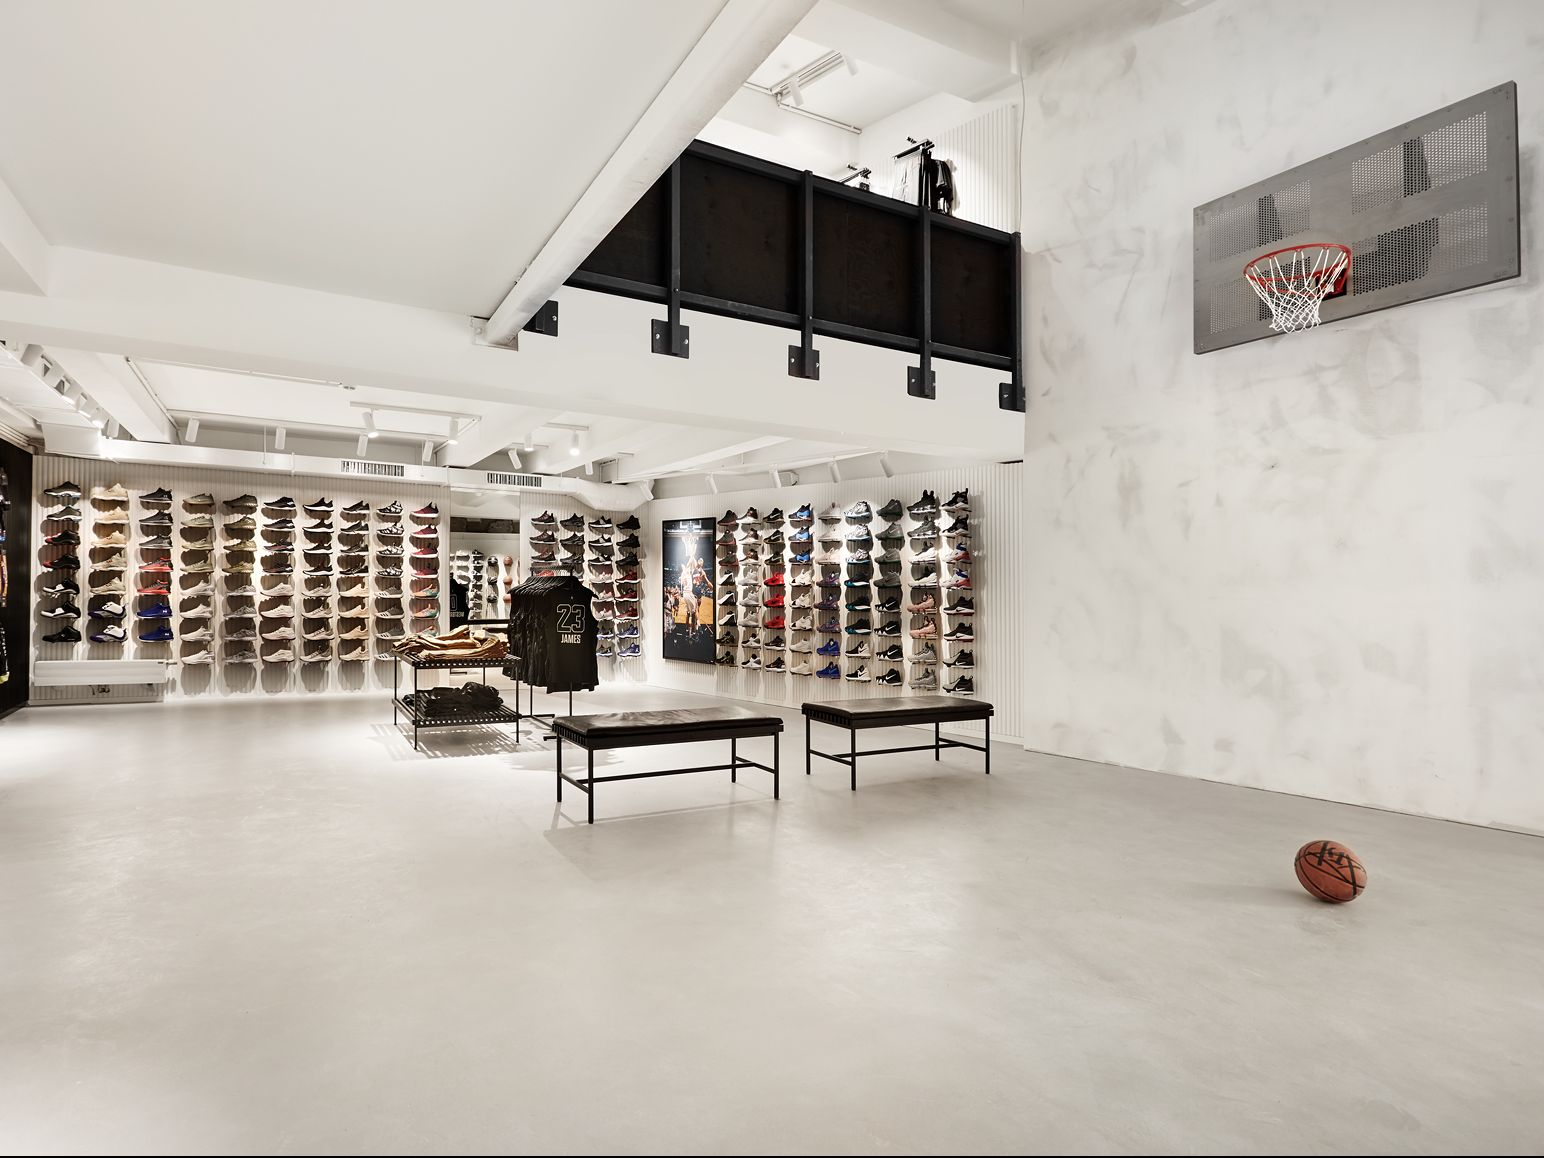 The heart of the store is obviously the basketball court